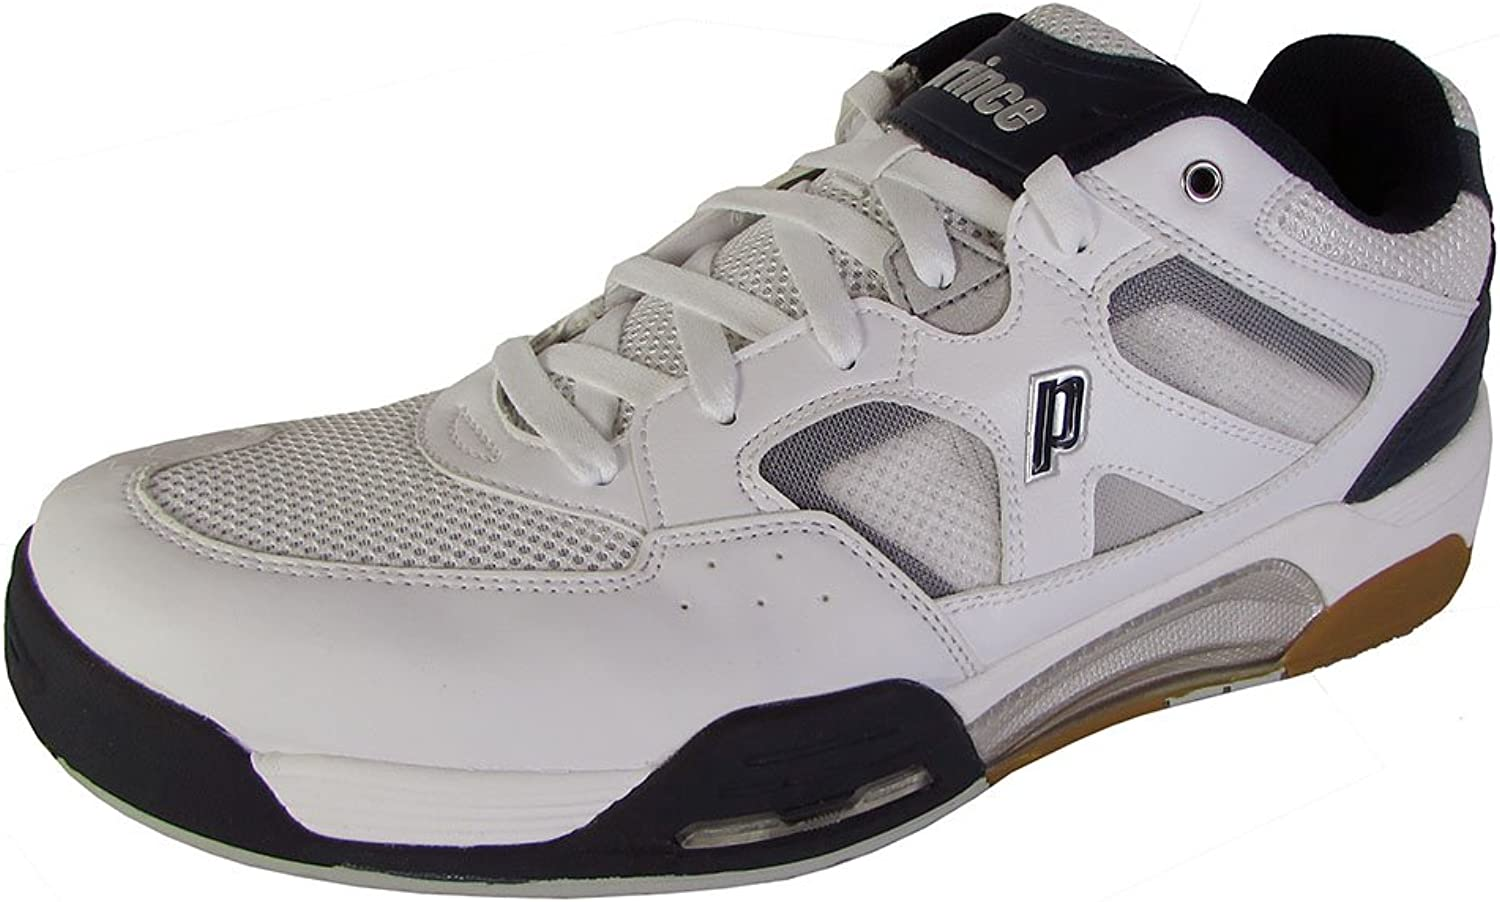 Prince NFS Attack Men's Squash shoes - White Navy